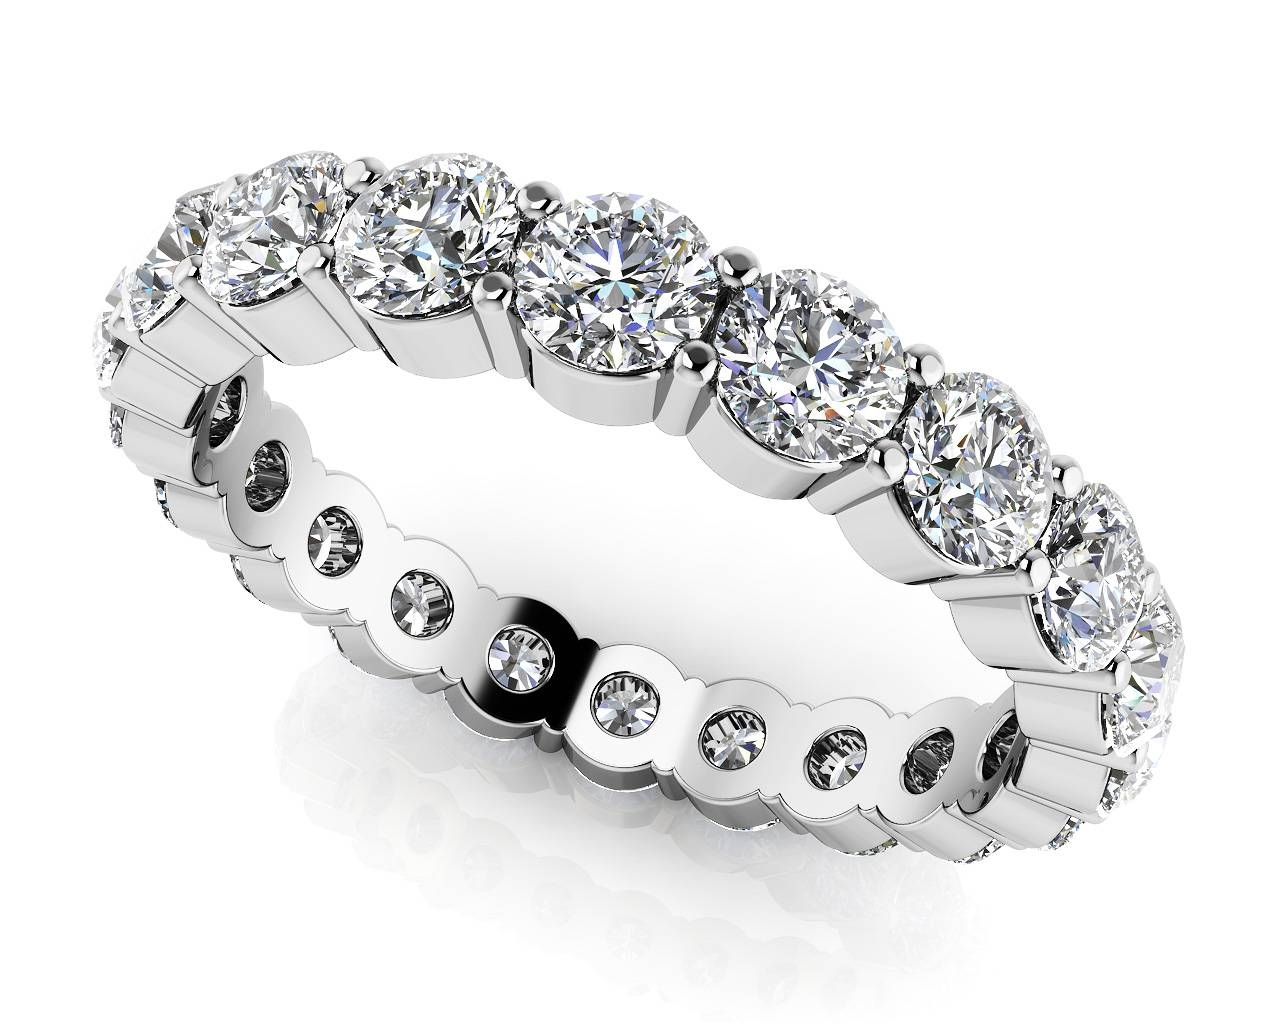 Large Collection Of Quality Diamond Eternity Rings & Bands Intended For Latest Platinum Anniversary Rings (Gallery 6 of 25)